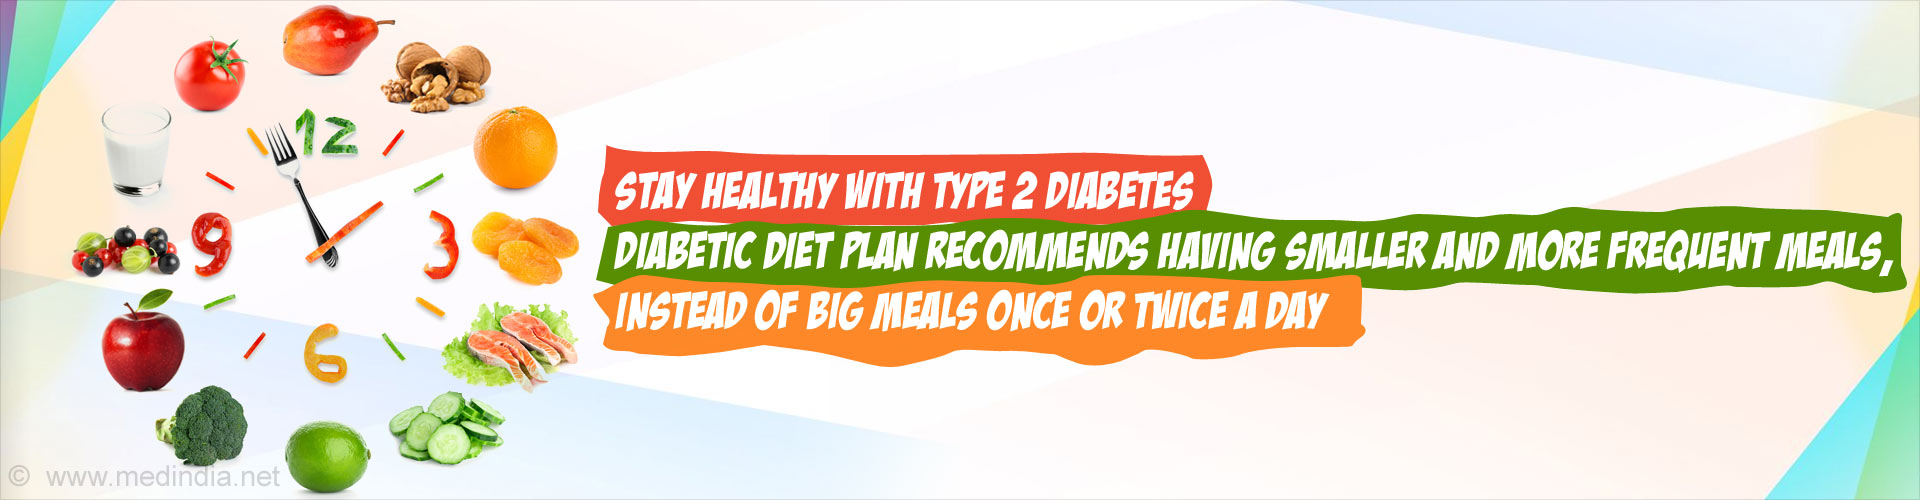 Stay Healthy With Type 2 Diabetes. Diabetic diet plan recommends having smaller and more frequent meals, instead of big meals once or twice a day.